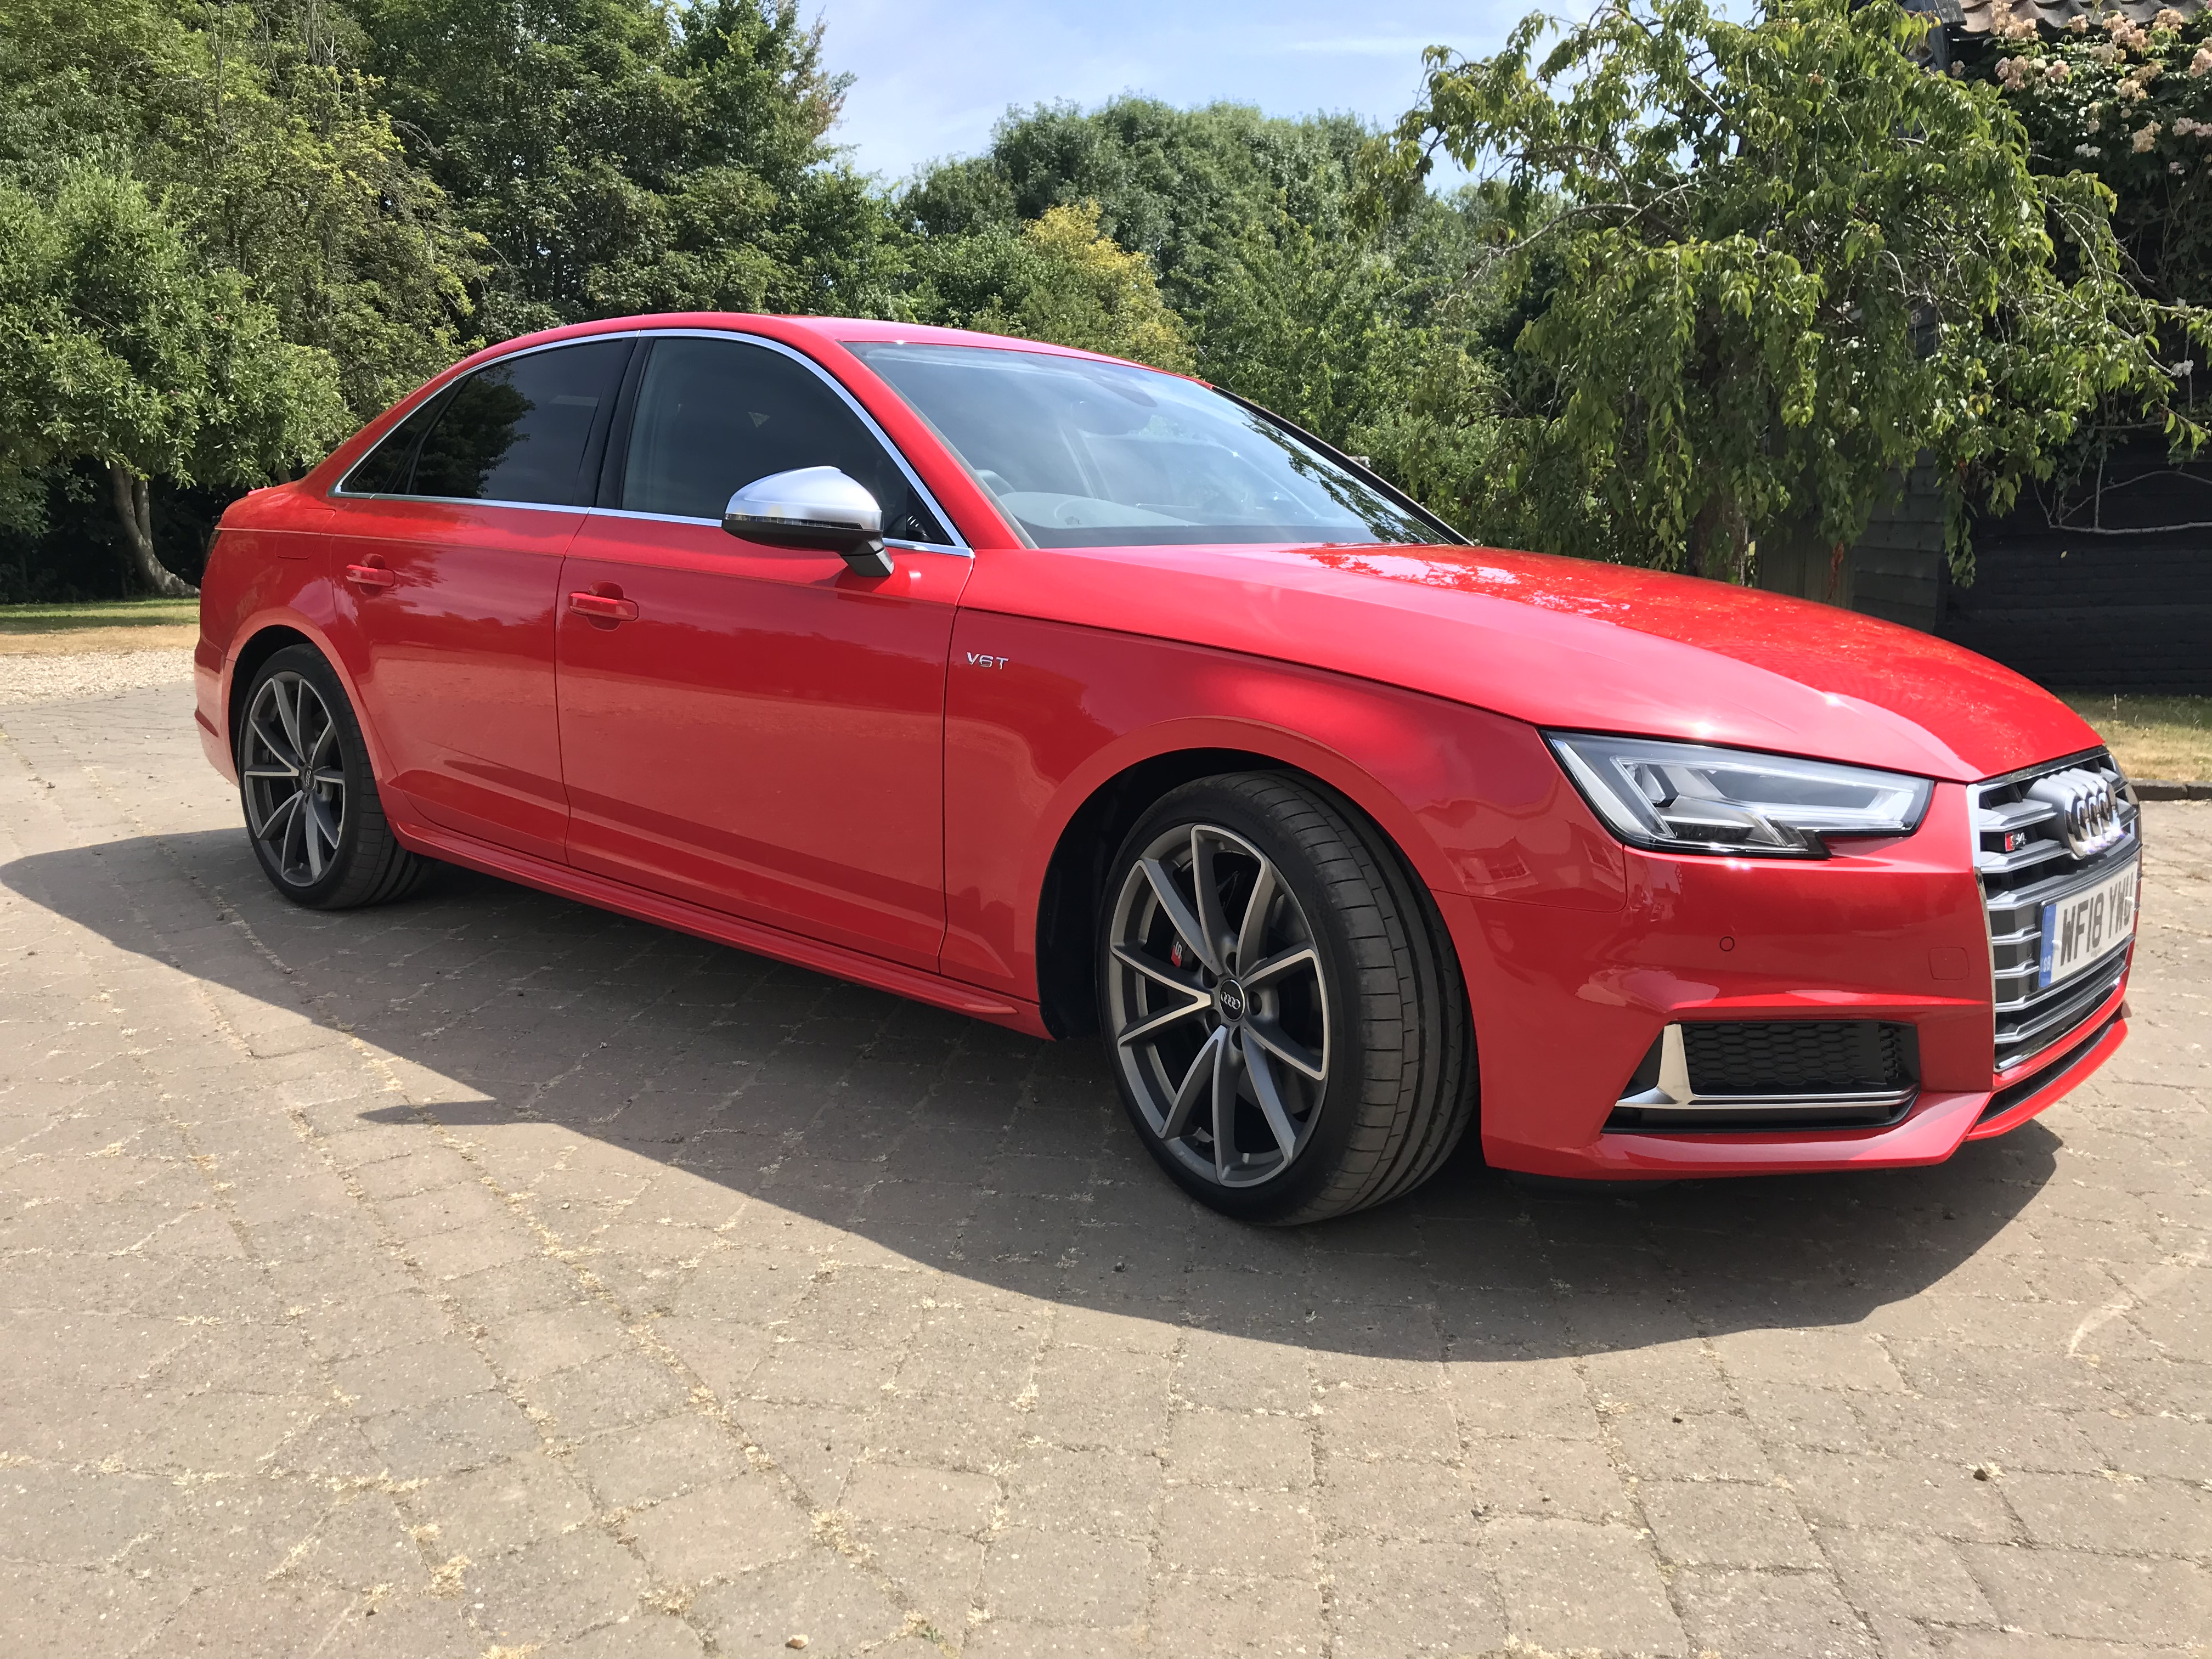 In Review; Mercedes AMG A35 4Matic Executive (Auto/ Petrol)